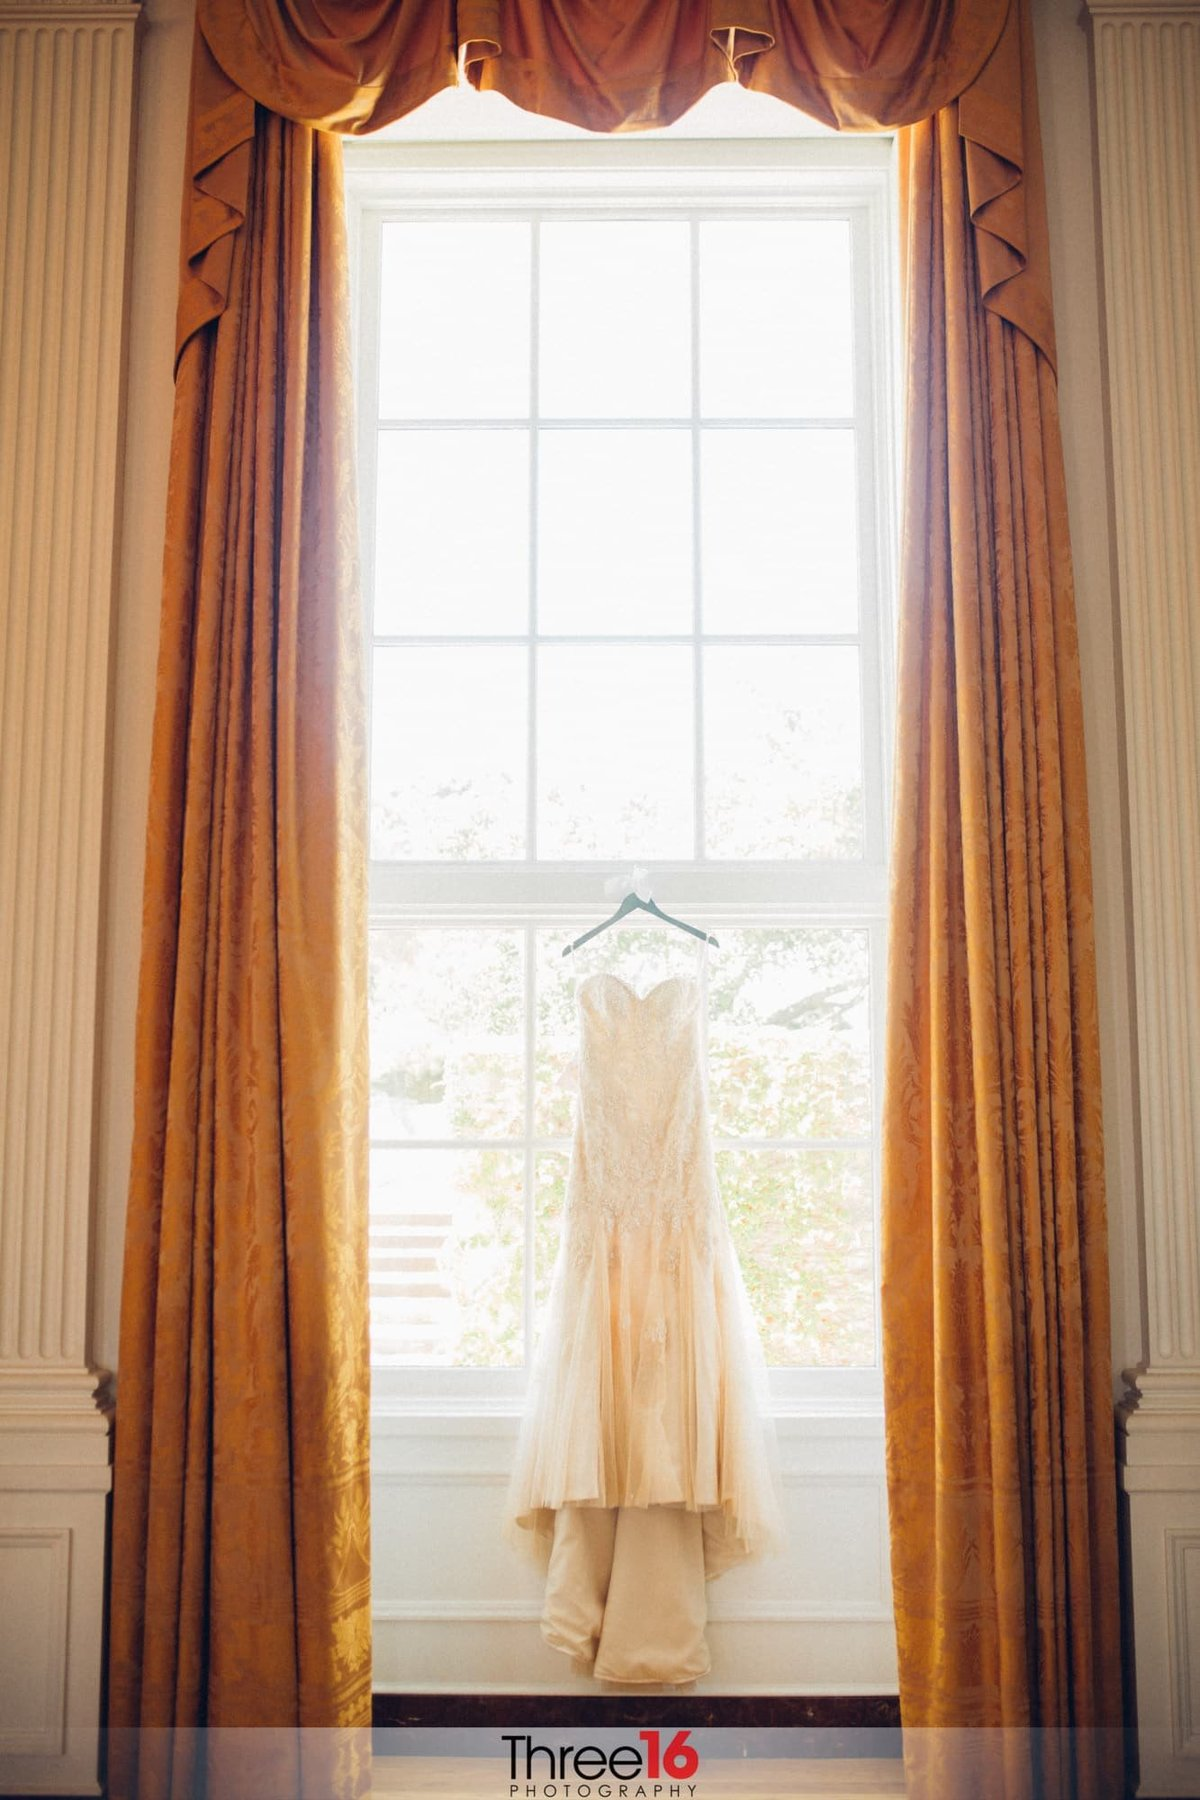 Bride's dress hangs on display in front of a large window